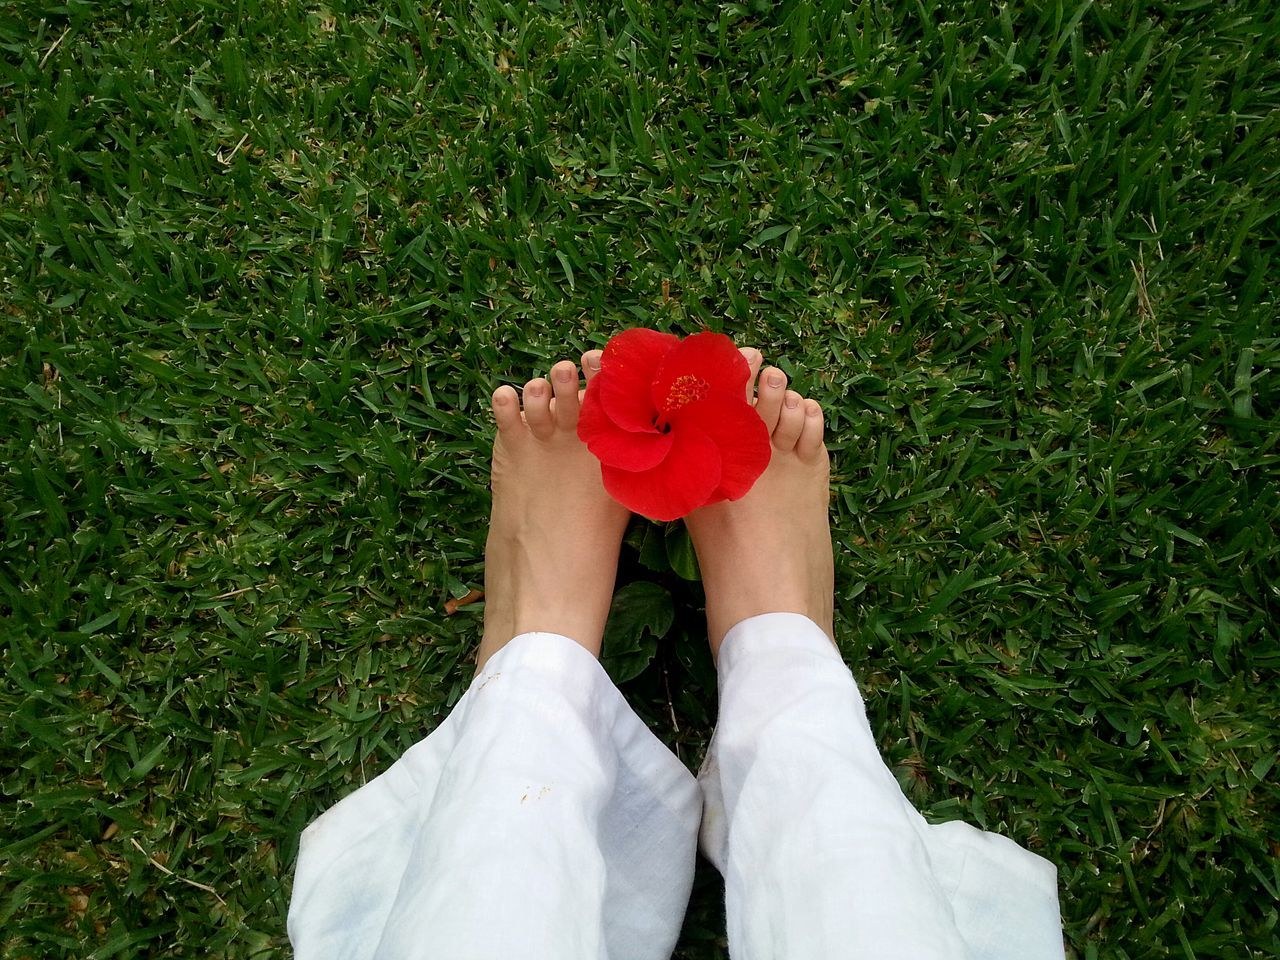 Low section of woman holding red hibiscus with leg on grass